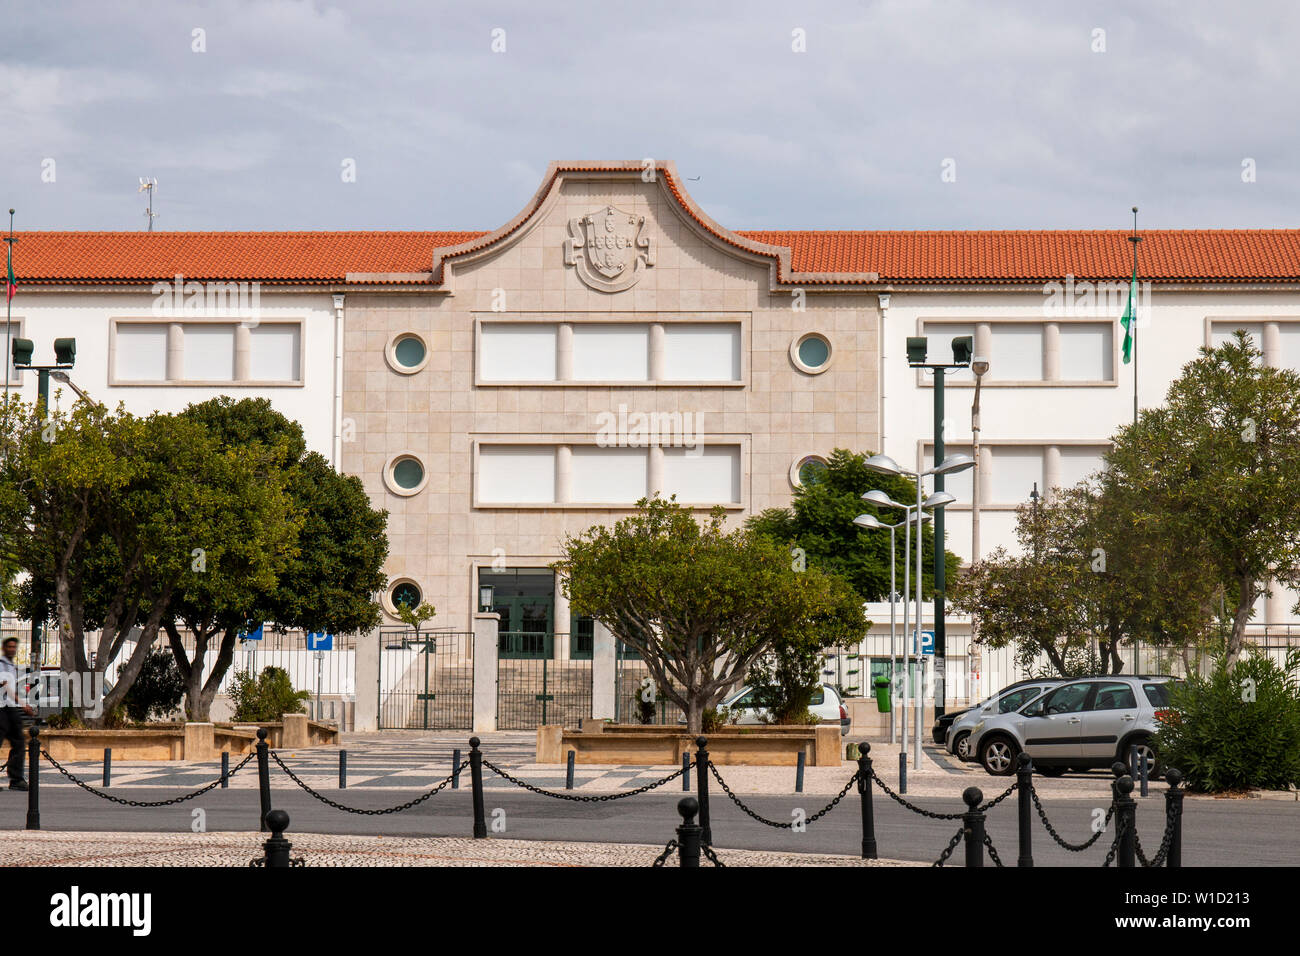 View of the large highschool / secondary school Joao de Deus located on Faro city, Portugal. - Stock Image